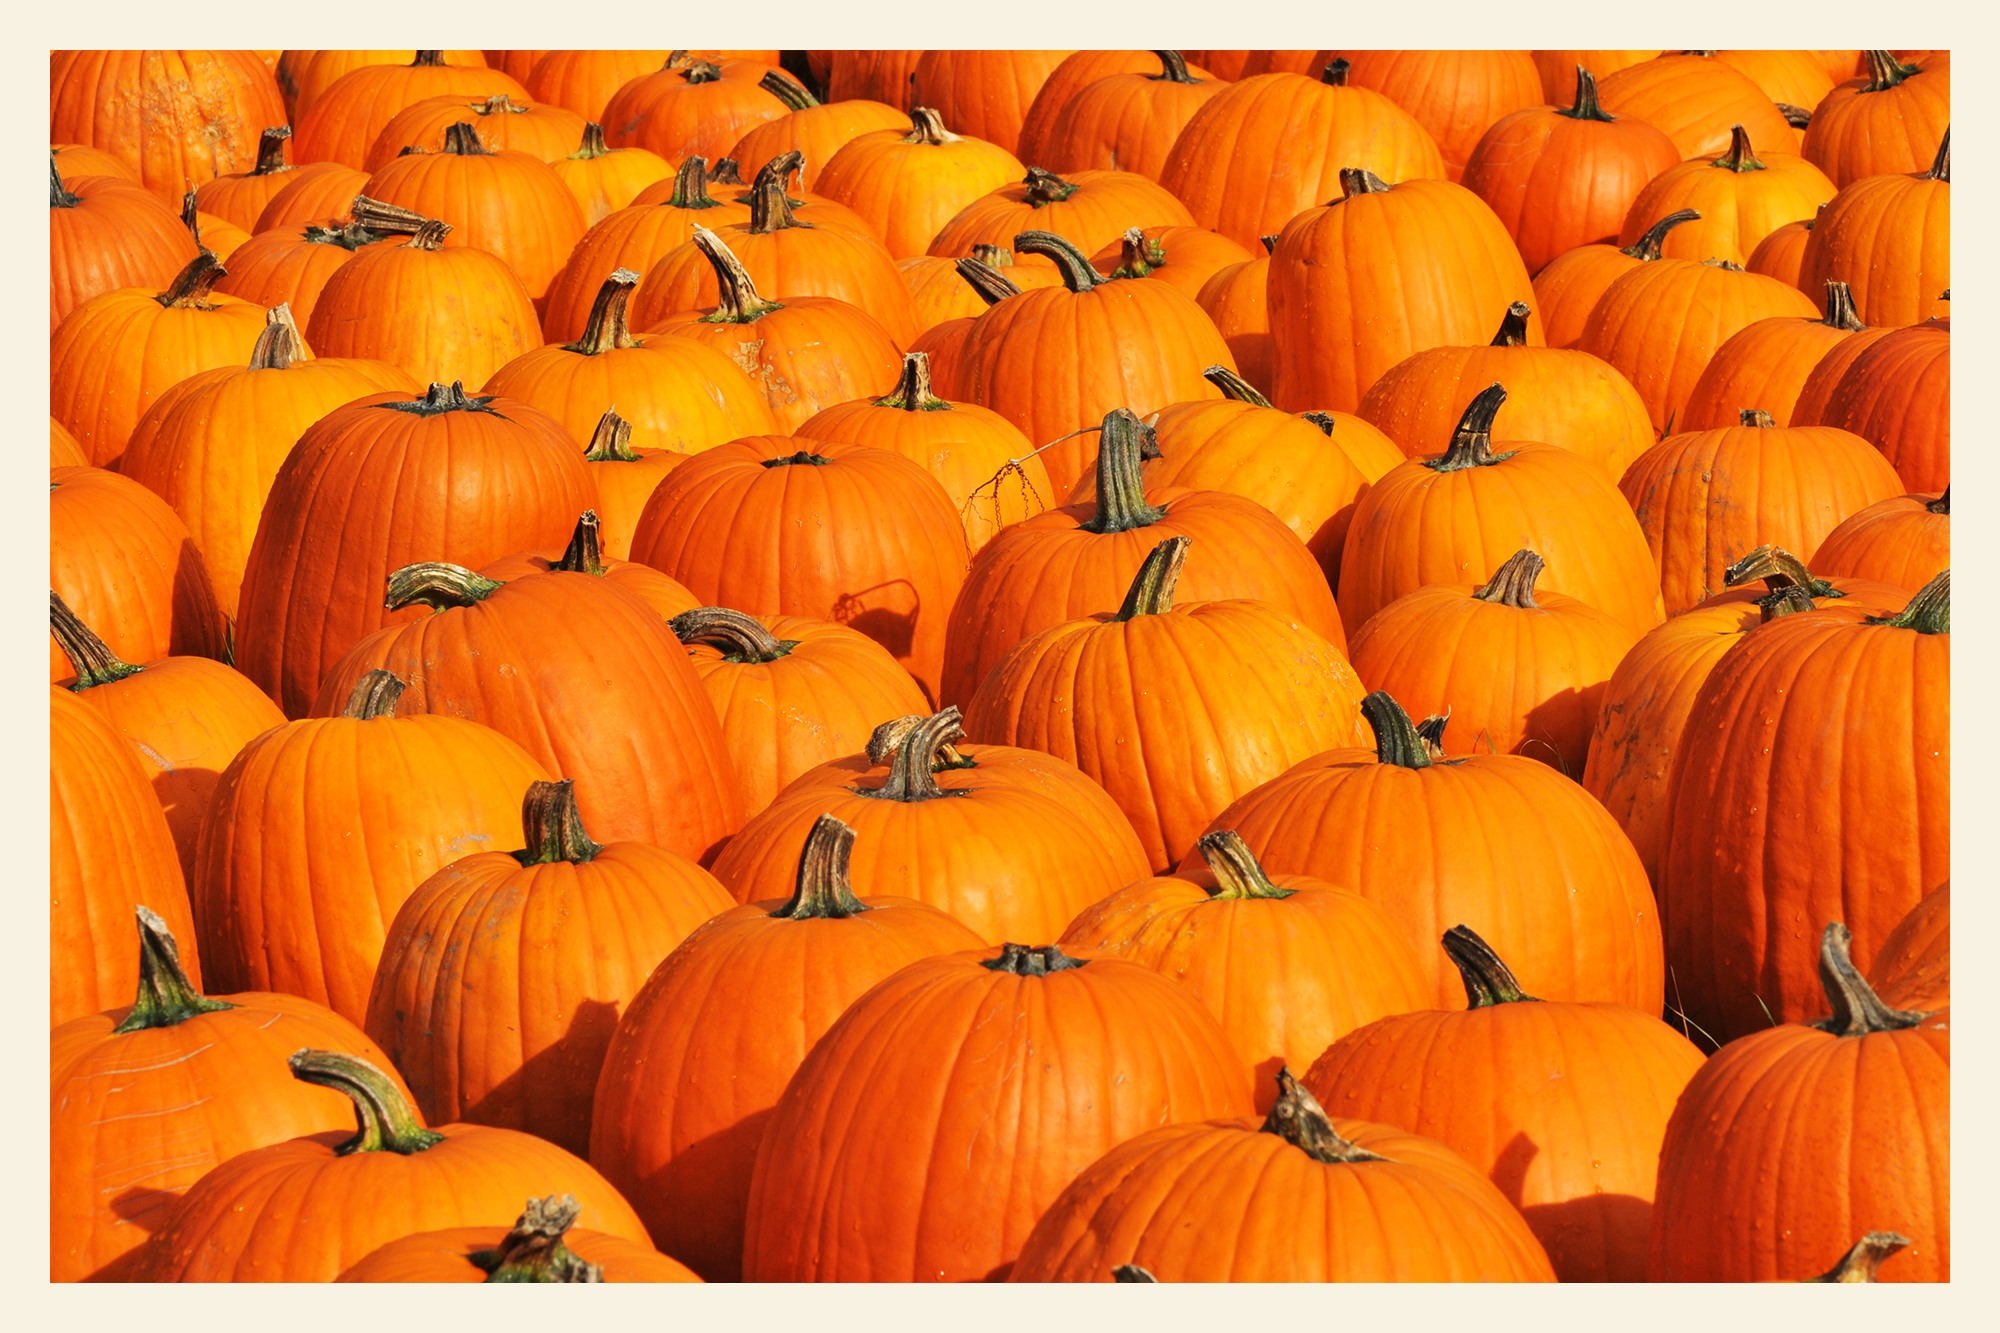 A large number of pumpkins sitting side-by-side